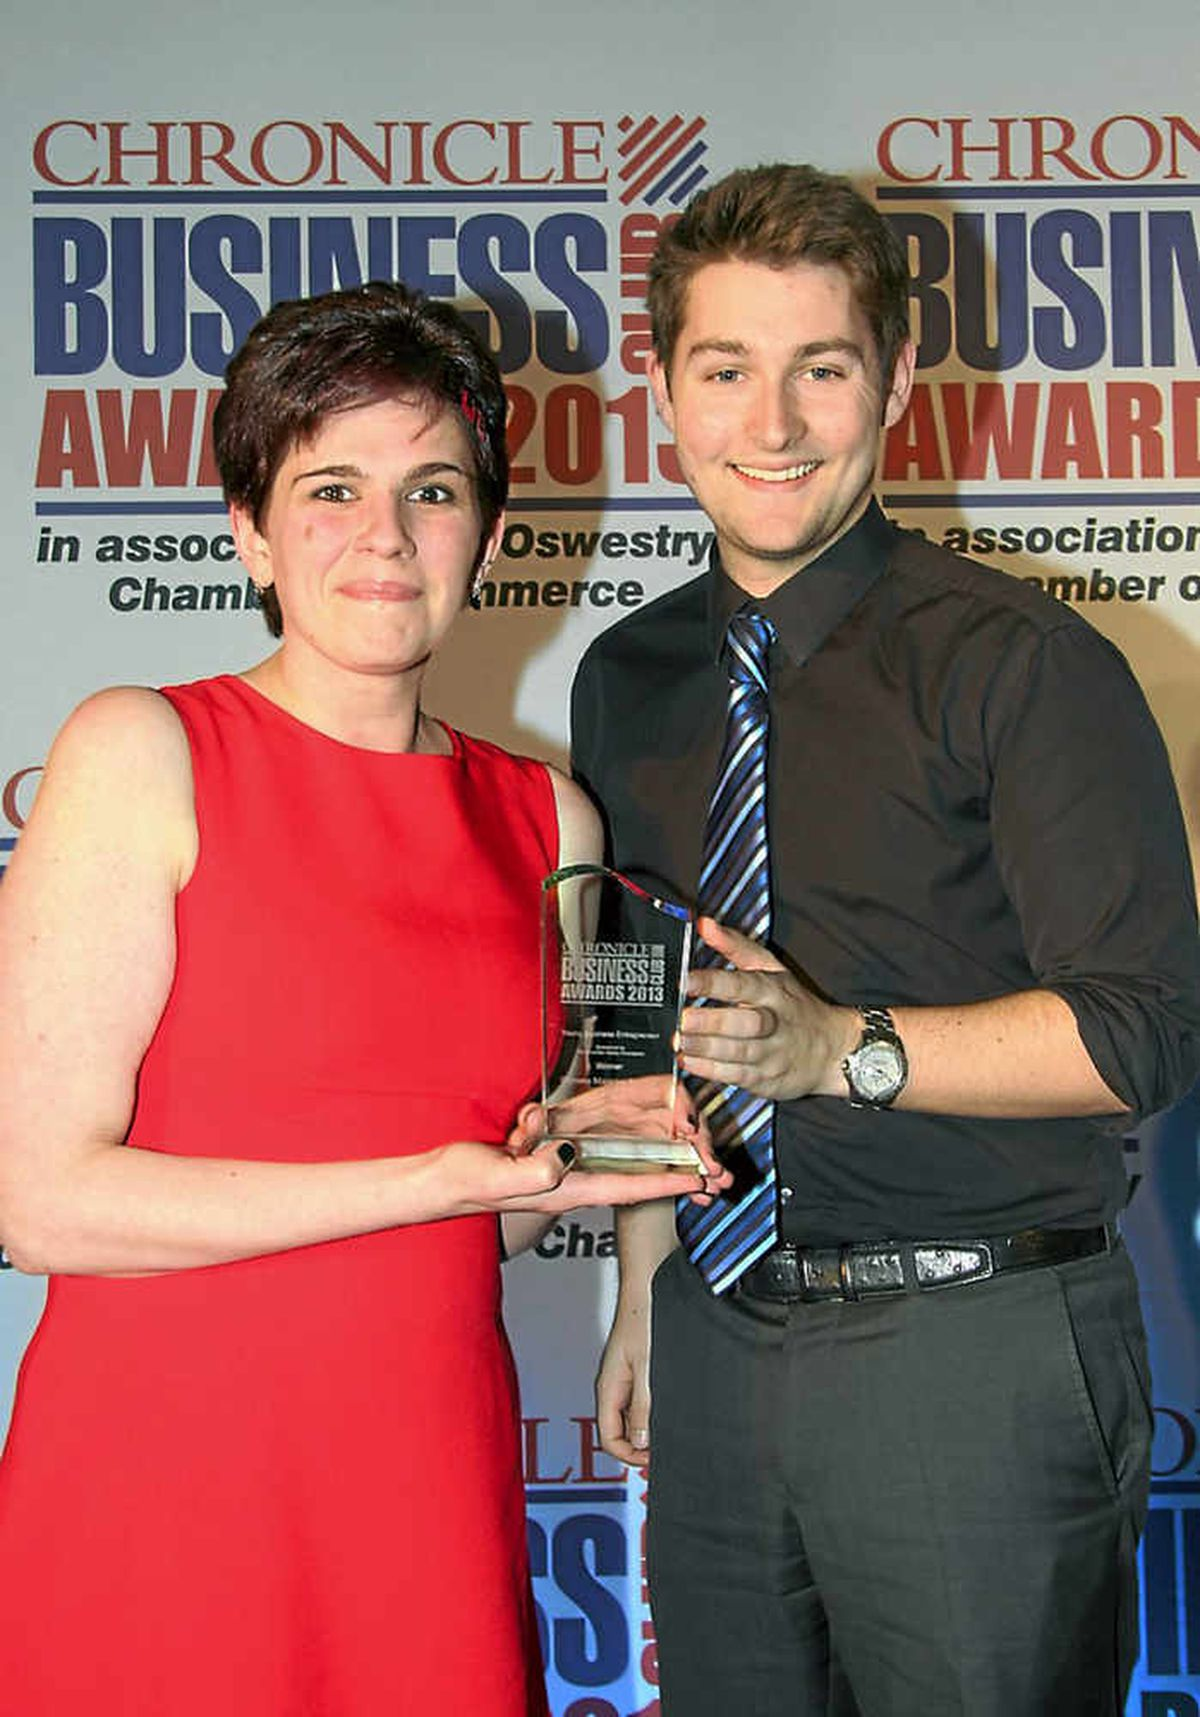 Young Business Entrepreneur – Gemma Manning-Bentley and Tristan Hartey of The Charlotte Hartey Foundation, who presented the award